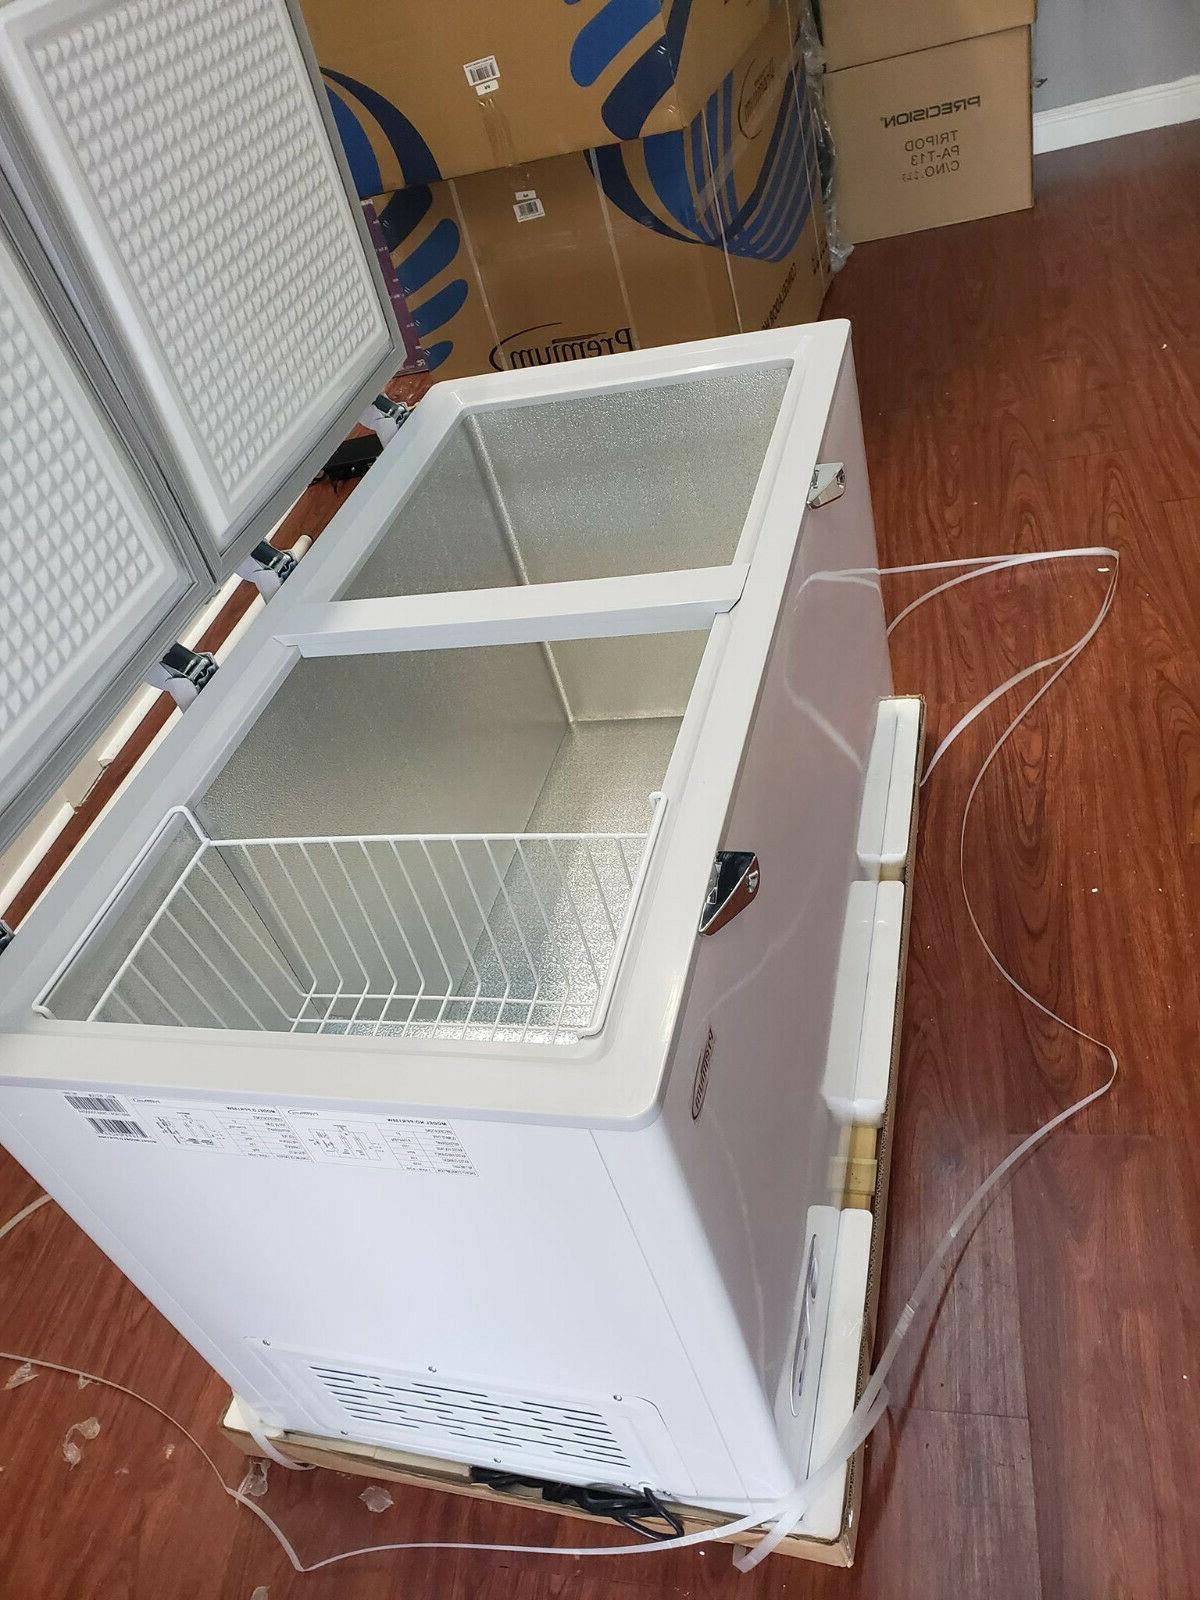 New Double Chest Freezer. 15.0 Ft Lock & include